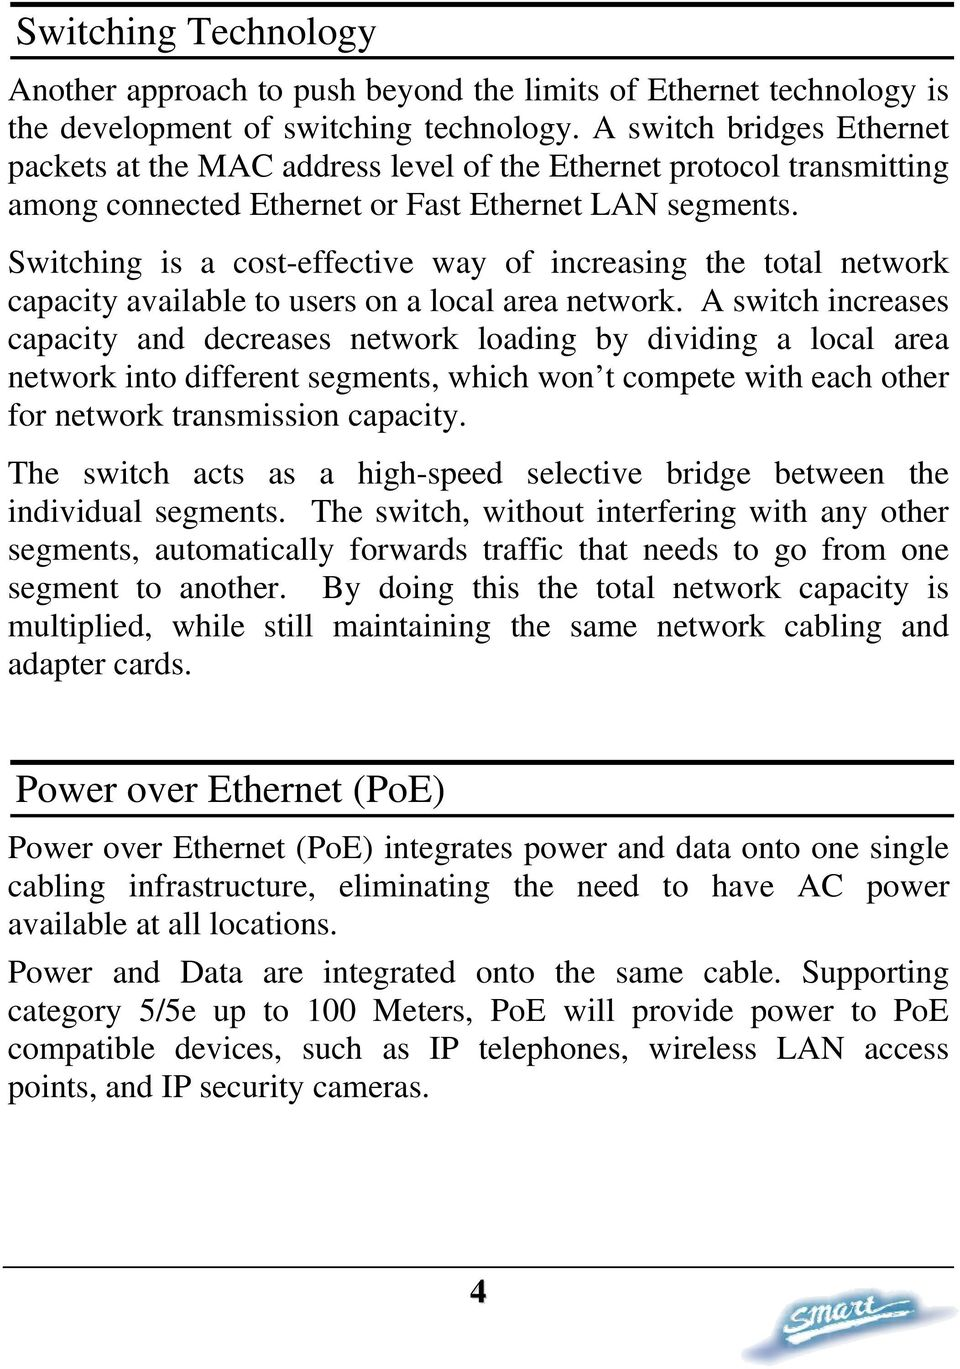 Switching is a cost-effective way of increasing the total network capacity available to users on a local area network.